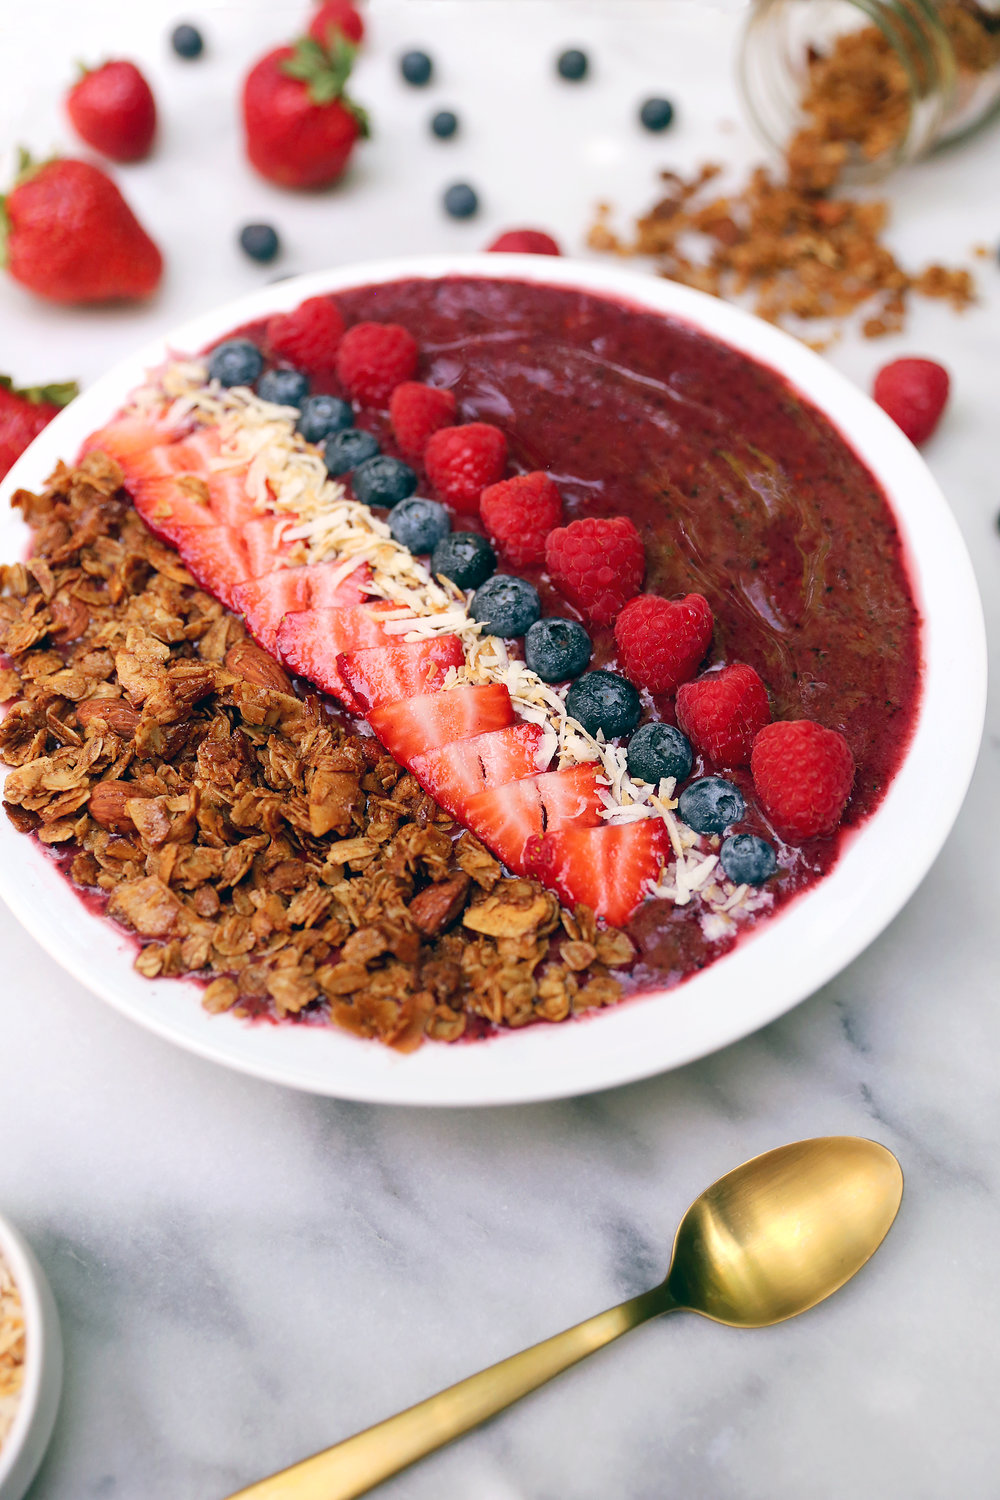 Berry Smoothie Bowl topped with granola, toasted coconut, and fresh berries. Get the recipe from the Unusually Lovely Blog.